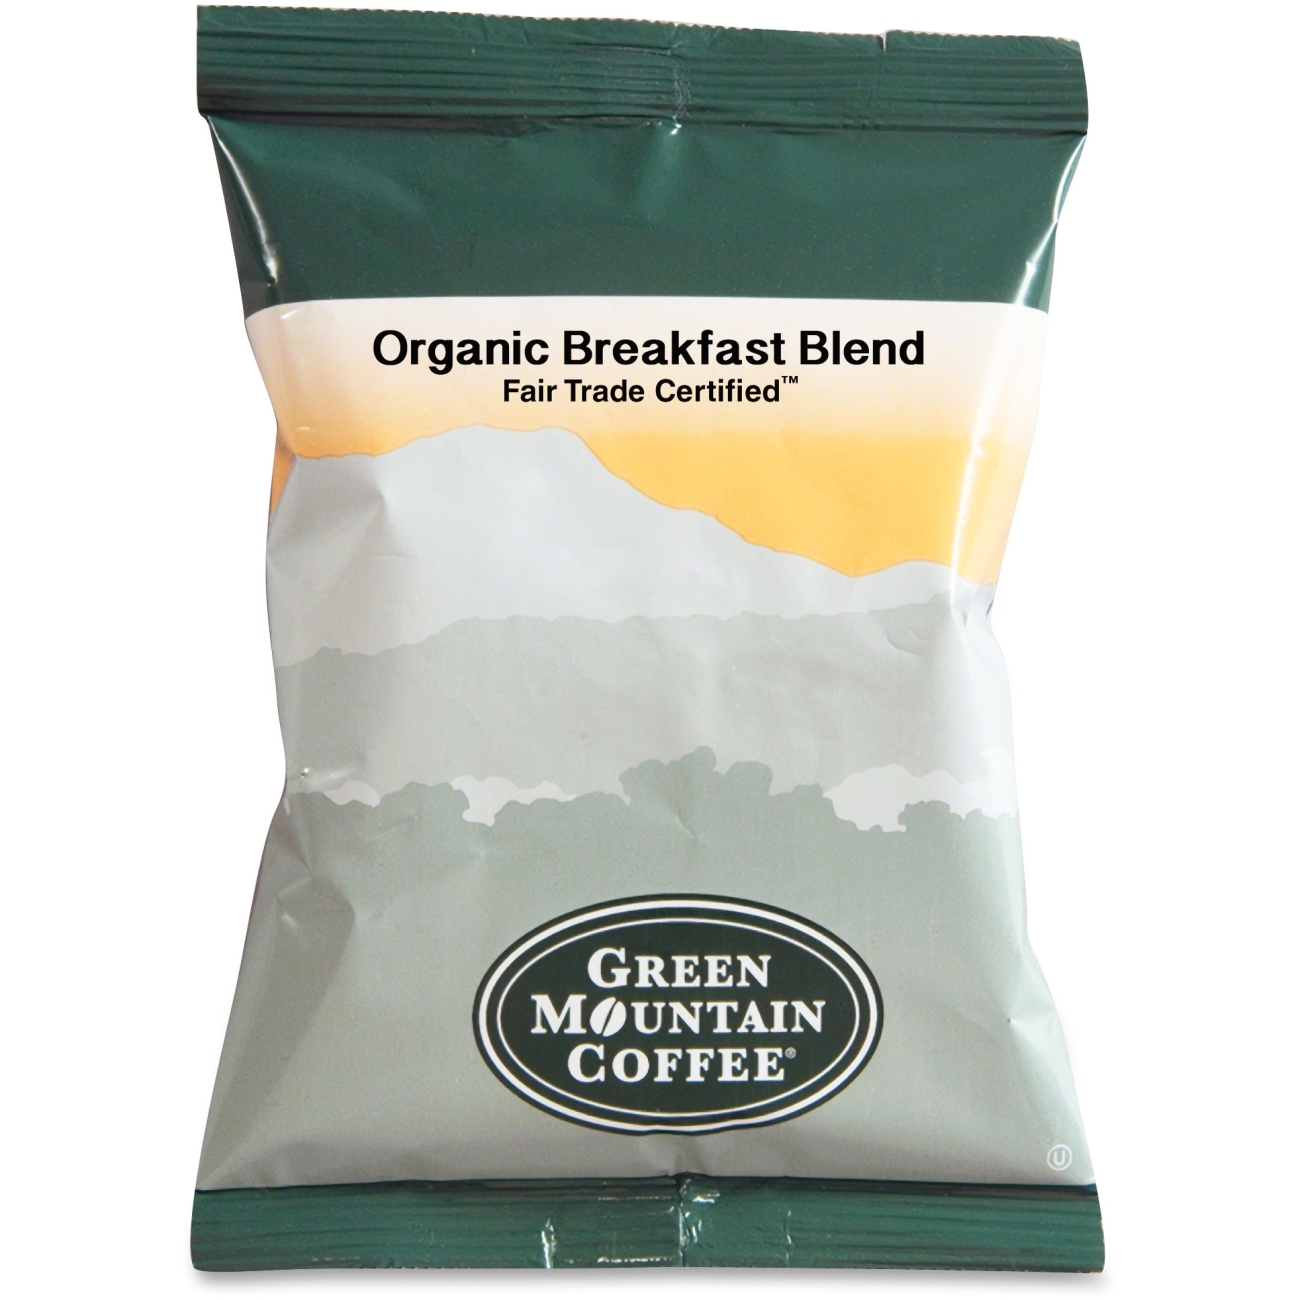 green mountain coffee roasters and keurig Applies to new email subscribers only upon confirmation of eligibility, new subscribers will receive a coupon for 15% off green mountain coffee roasters® k-cup®, k.